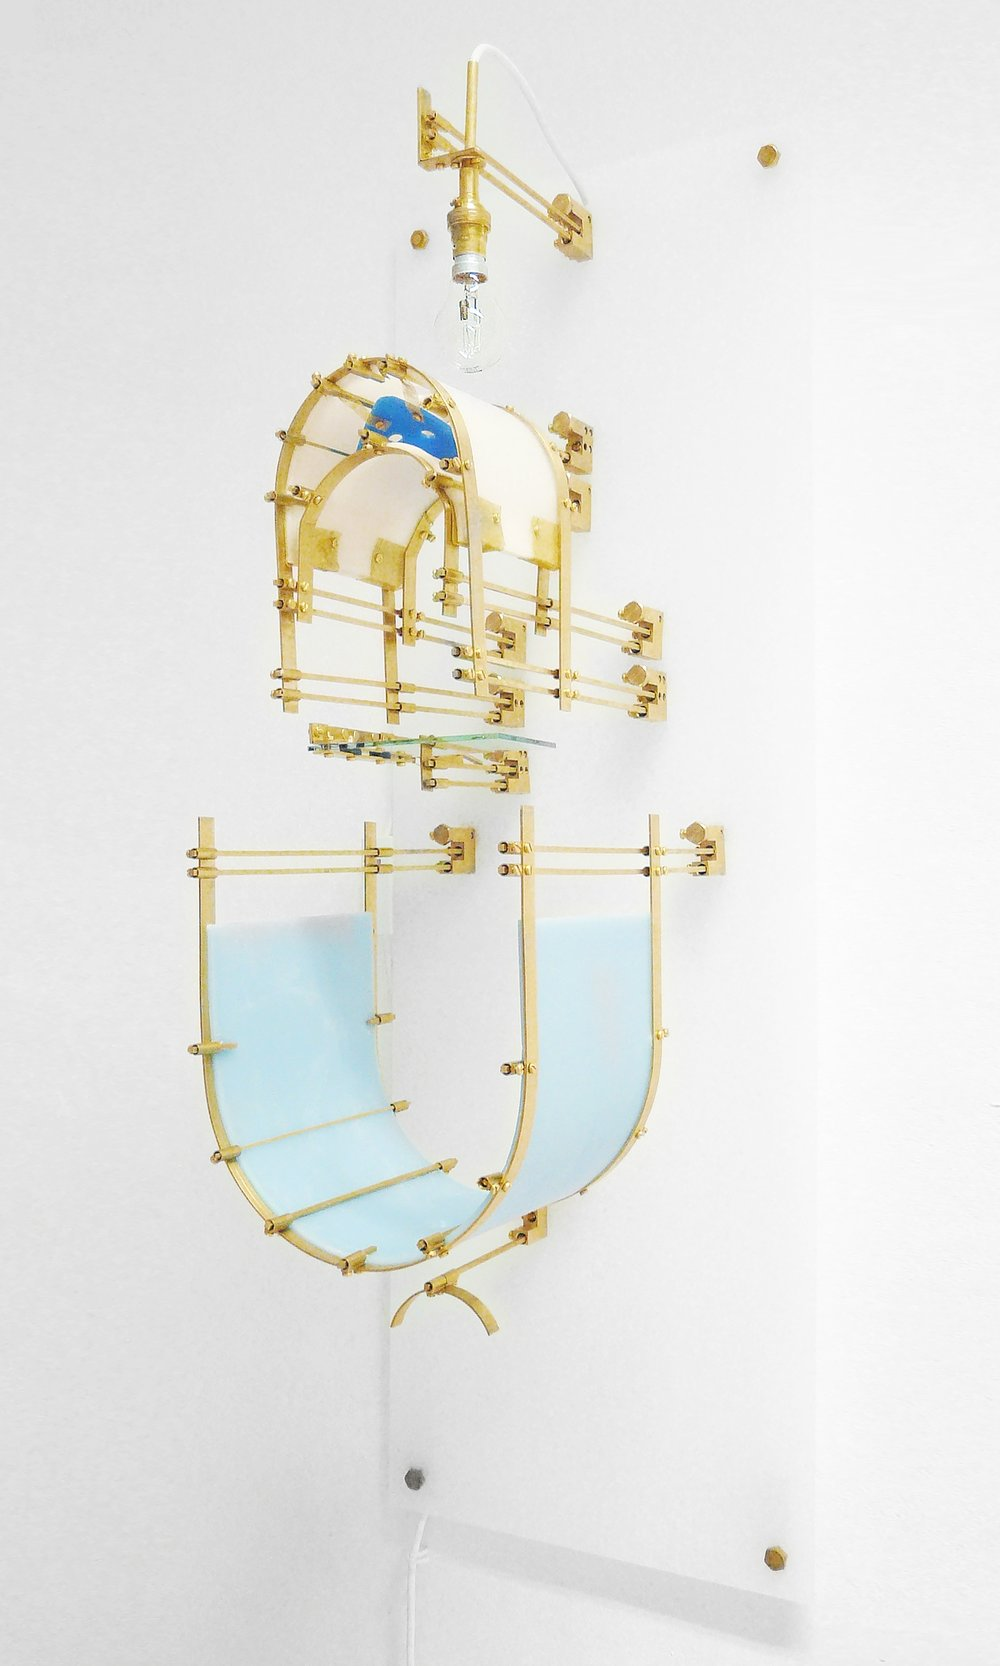 The Apparatus. Touching the Beyond.  Brass, wax, light bulb, mirror  120 x 45 x 45 cm 2011  1 AP  Chelsea College of Art & Design London, UK  Images: Anya Mokhova Studio